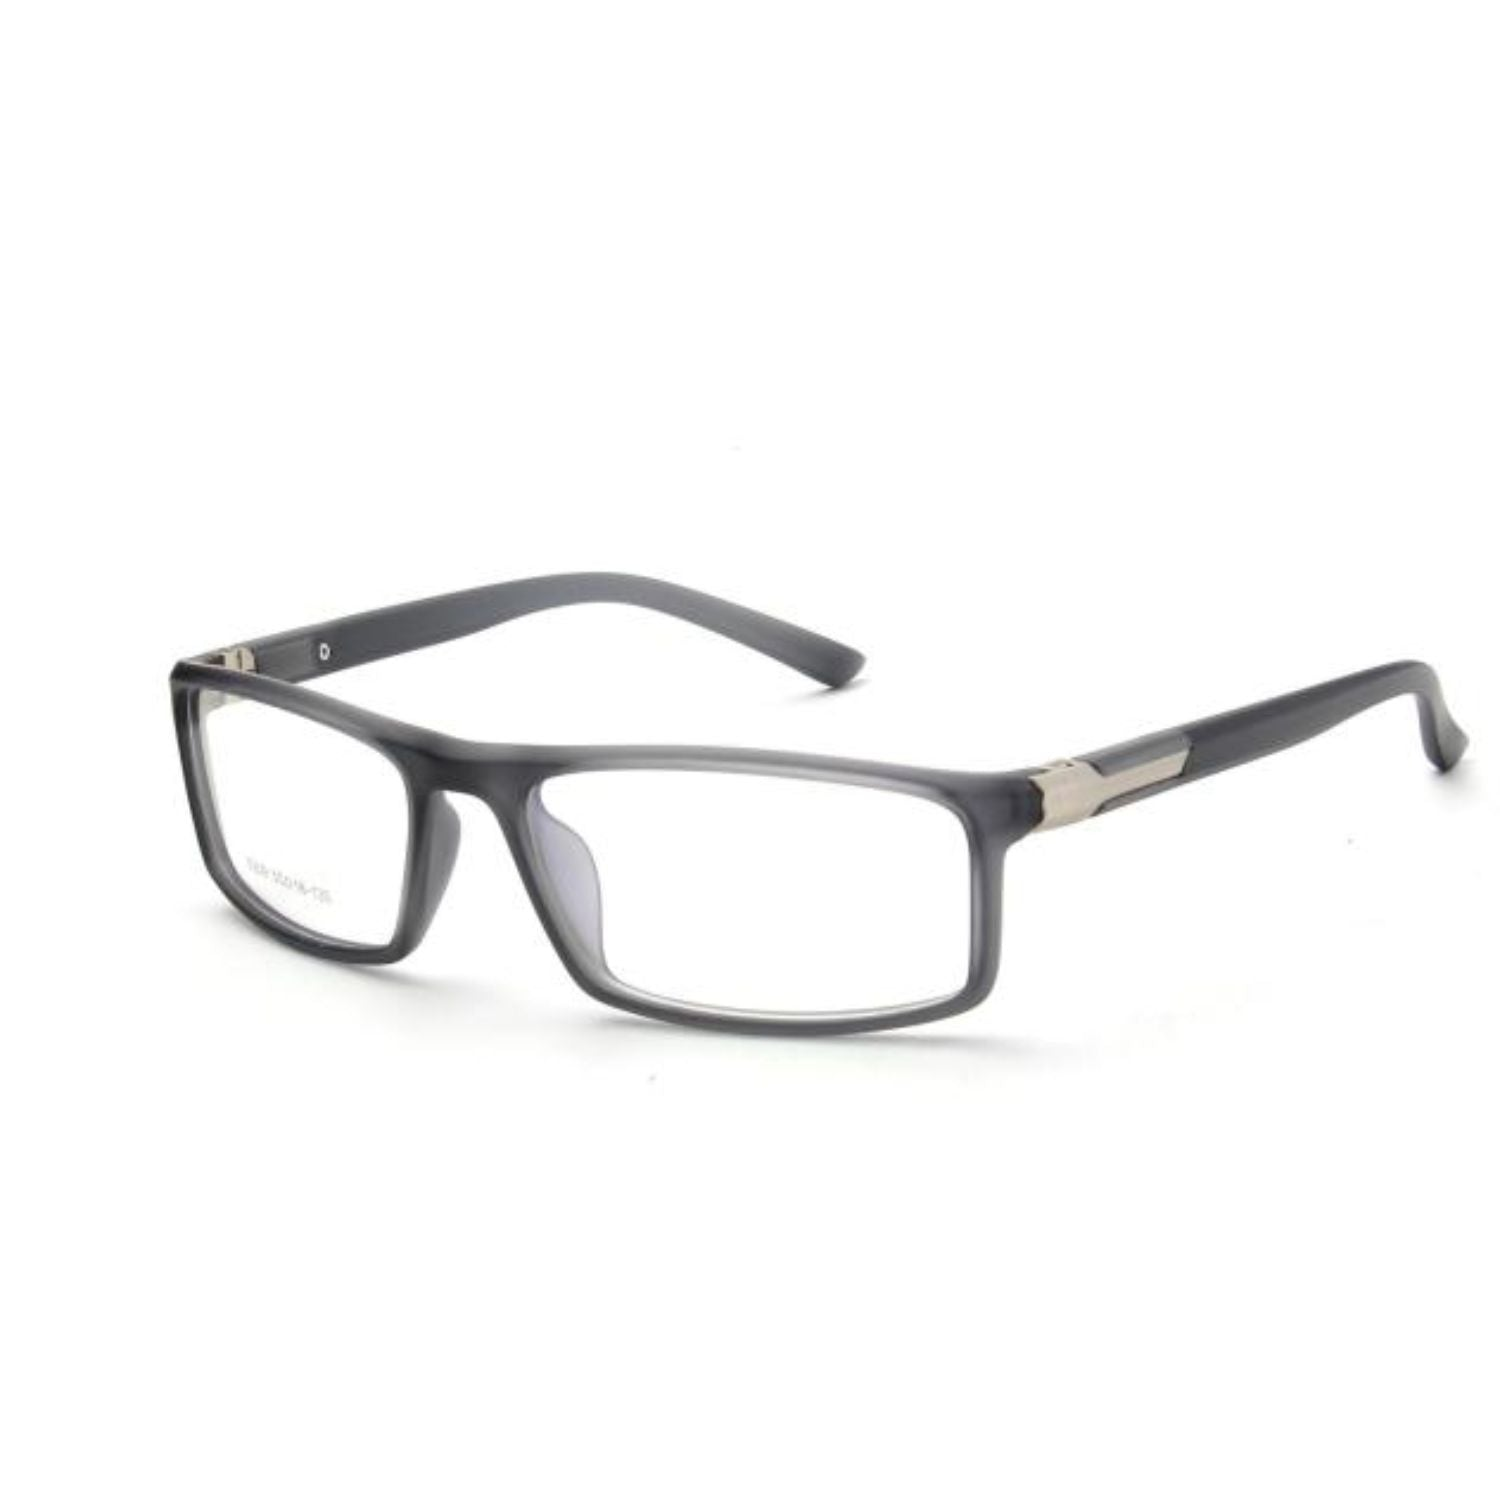 OTR6 - Classic Rectangle Optical Eyeglasses - Iris Fashion Inc. | Wholesale Sunglasses and Glasses